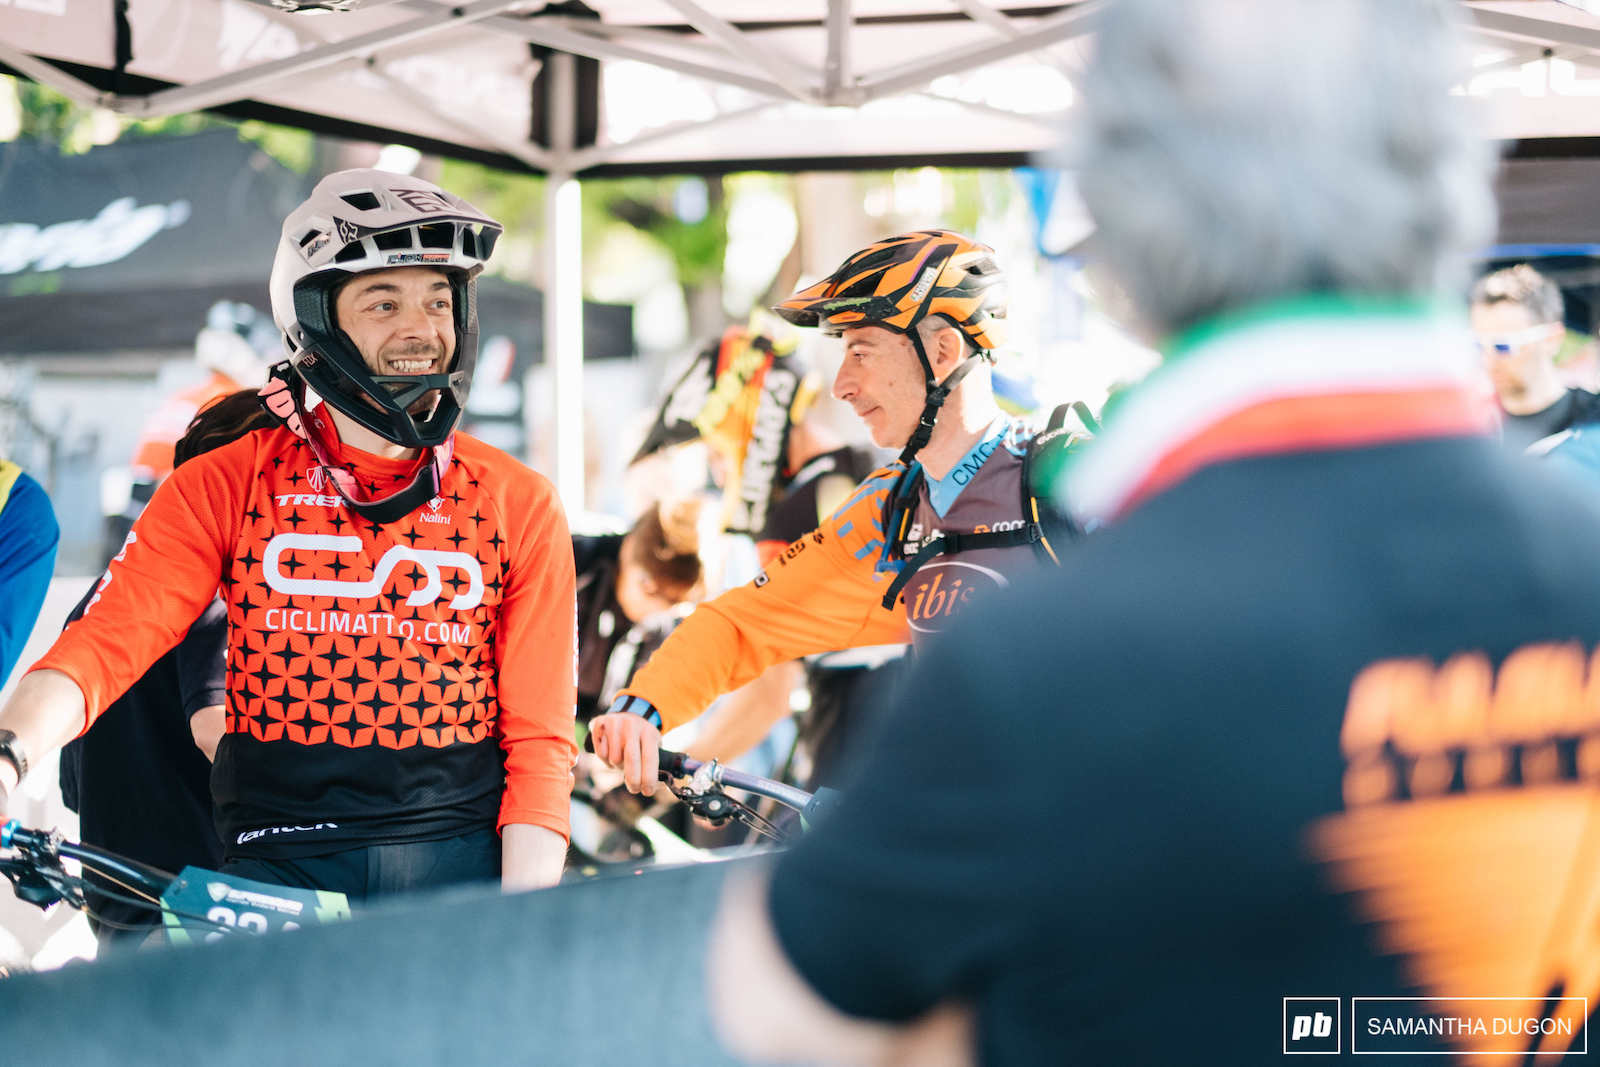 Riders happy and eager to get going on race day